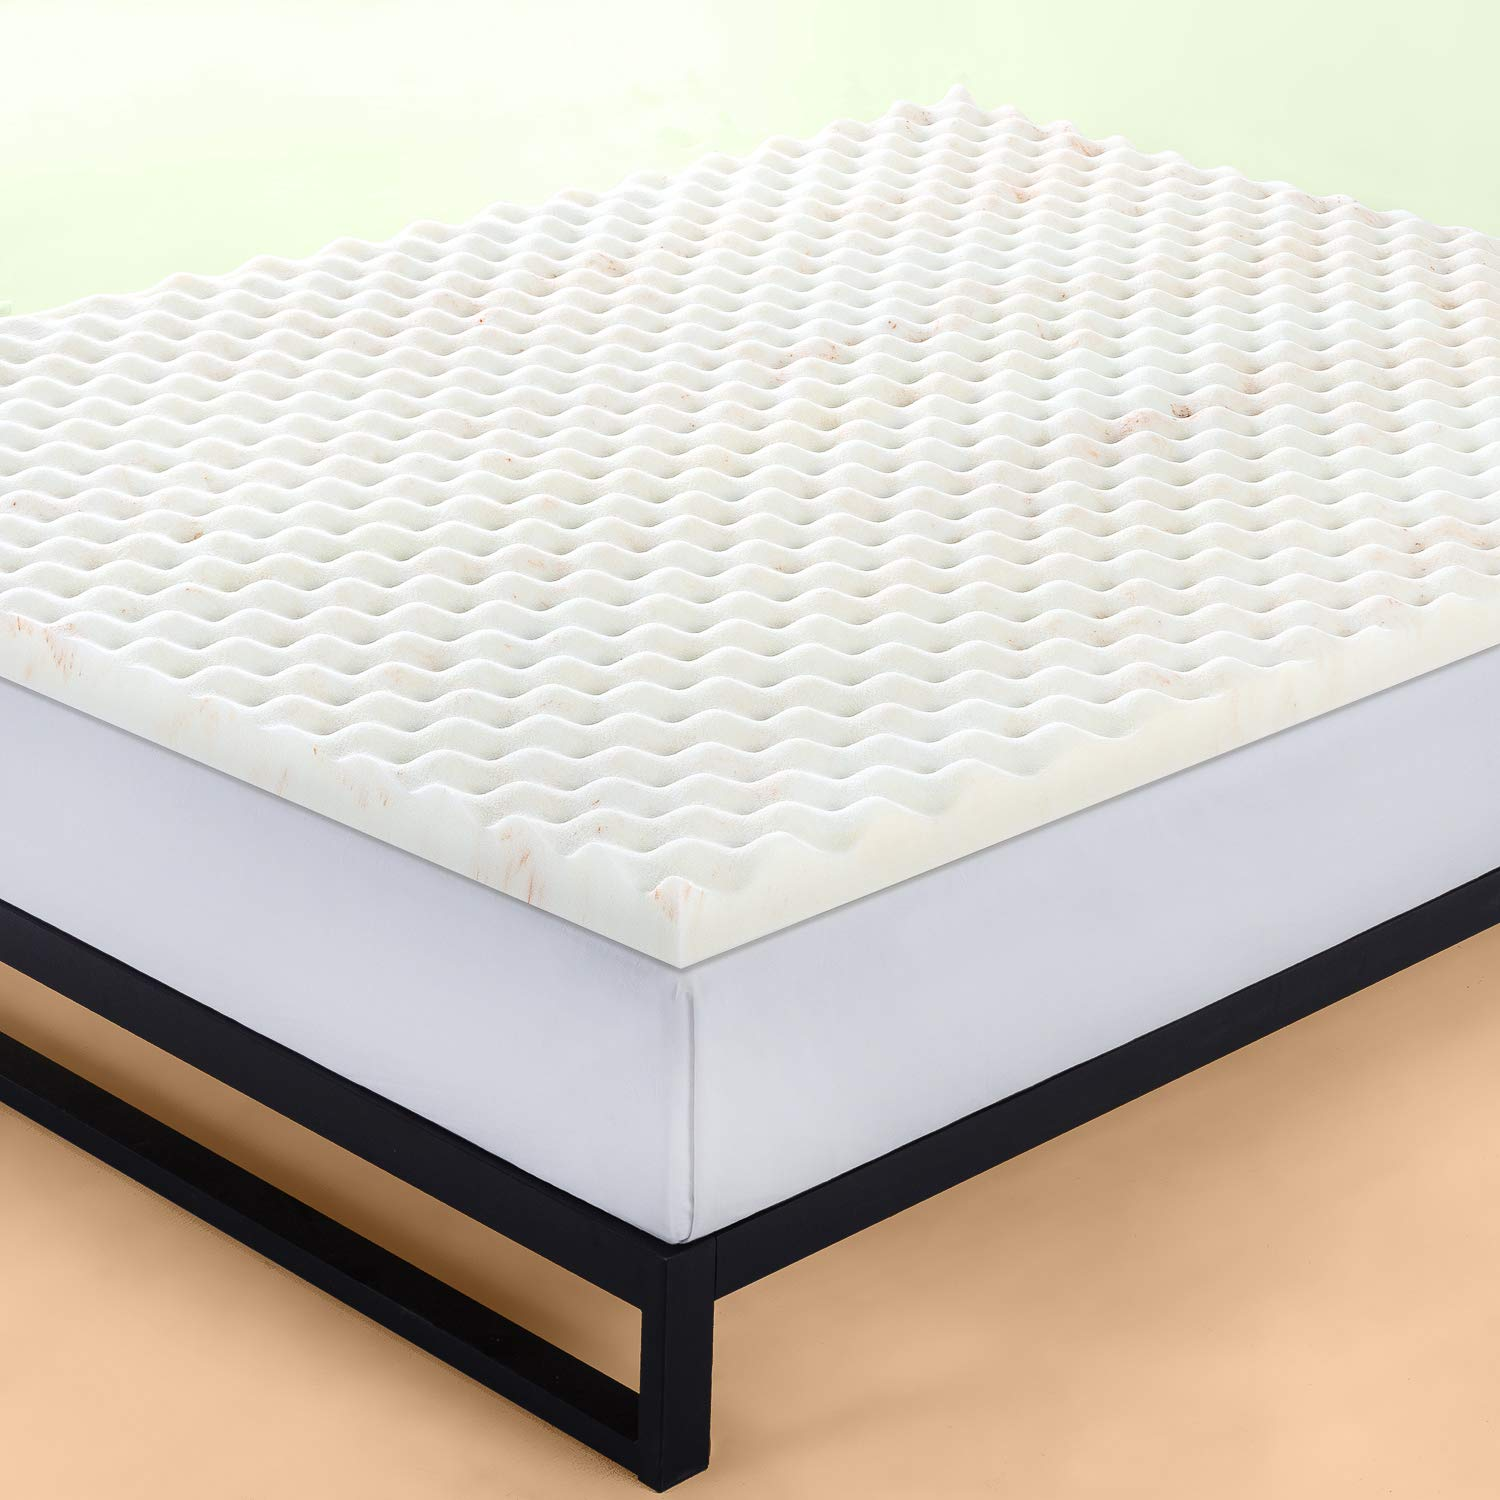 Queen Orange Zinus 1.5 Inch Cooling Convoluted Copper Memory Foam Mattress Topper with Air Flow Design//Antimicrobial Foam//Odor-Resistant//Pressure Relieving Contoured Surface